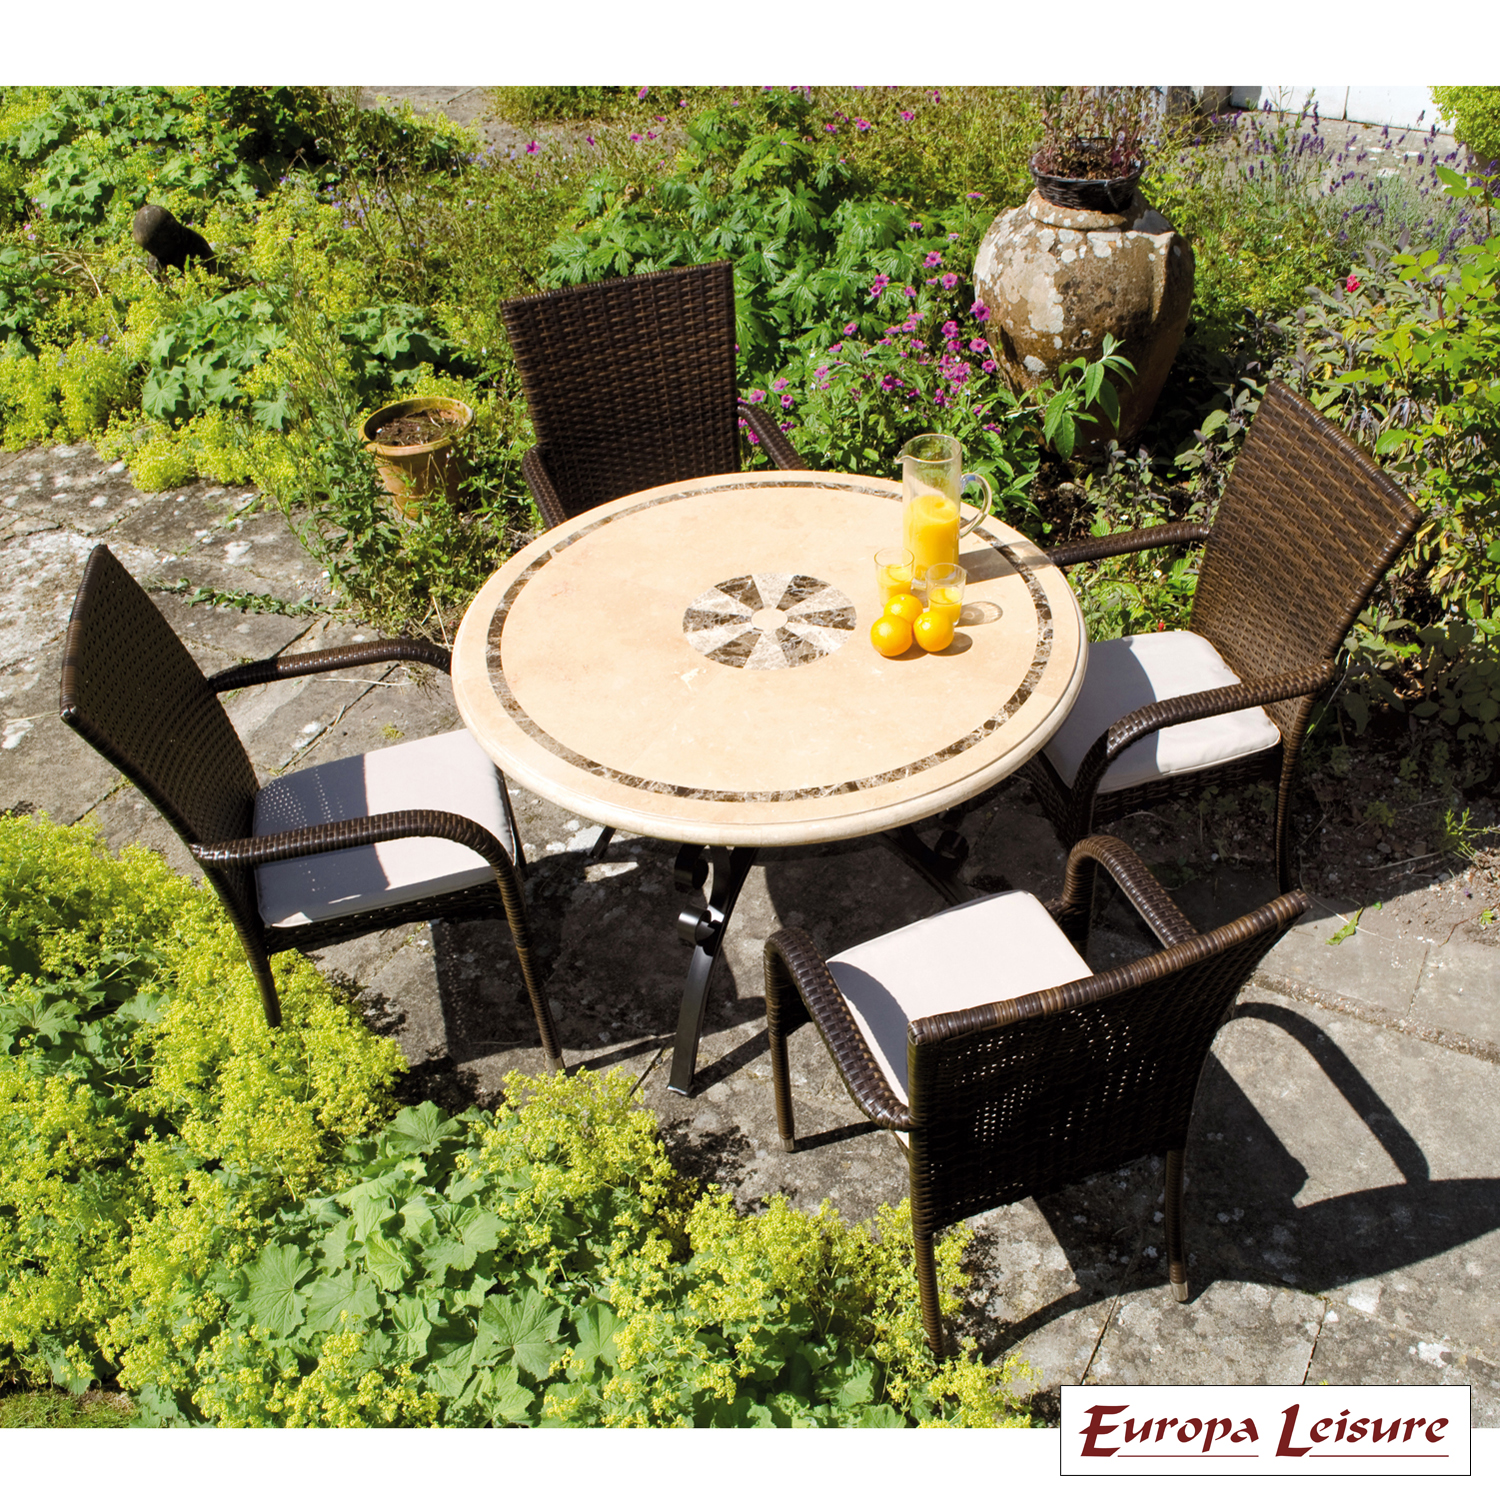 Savona table with Castello chairs